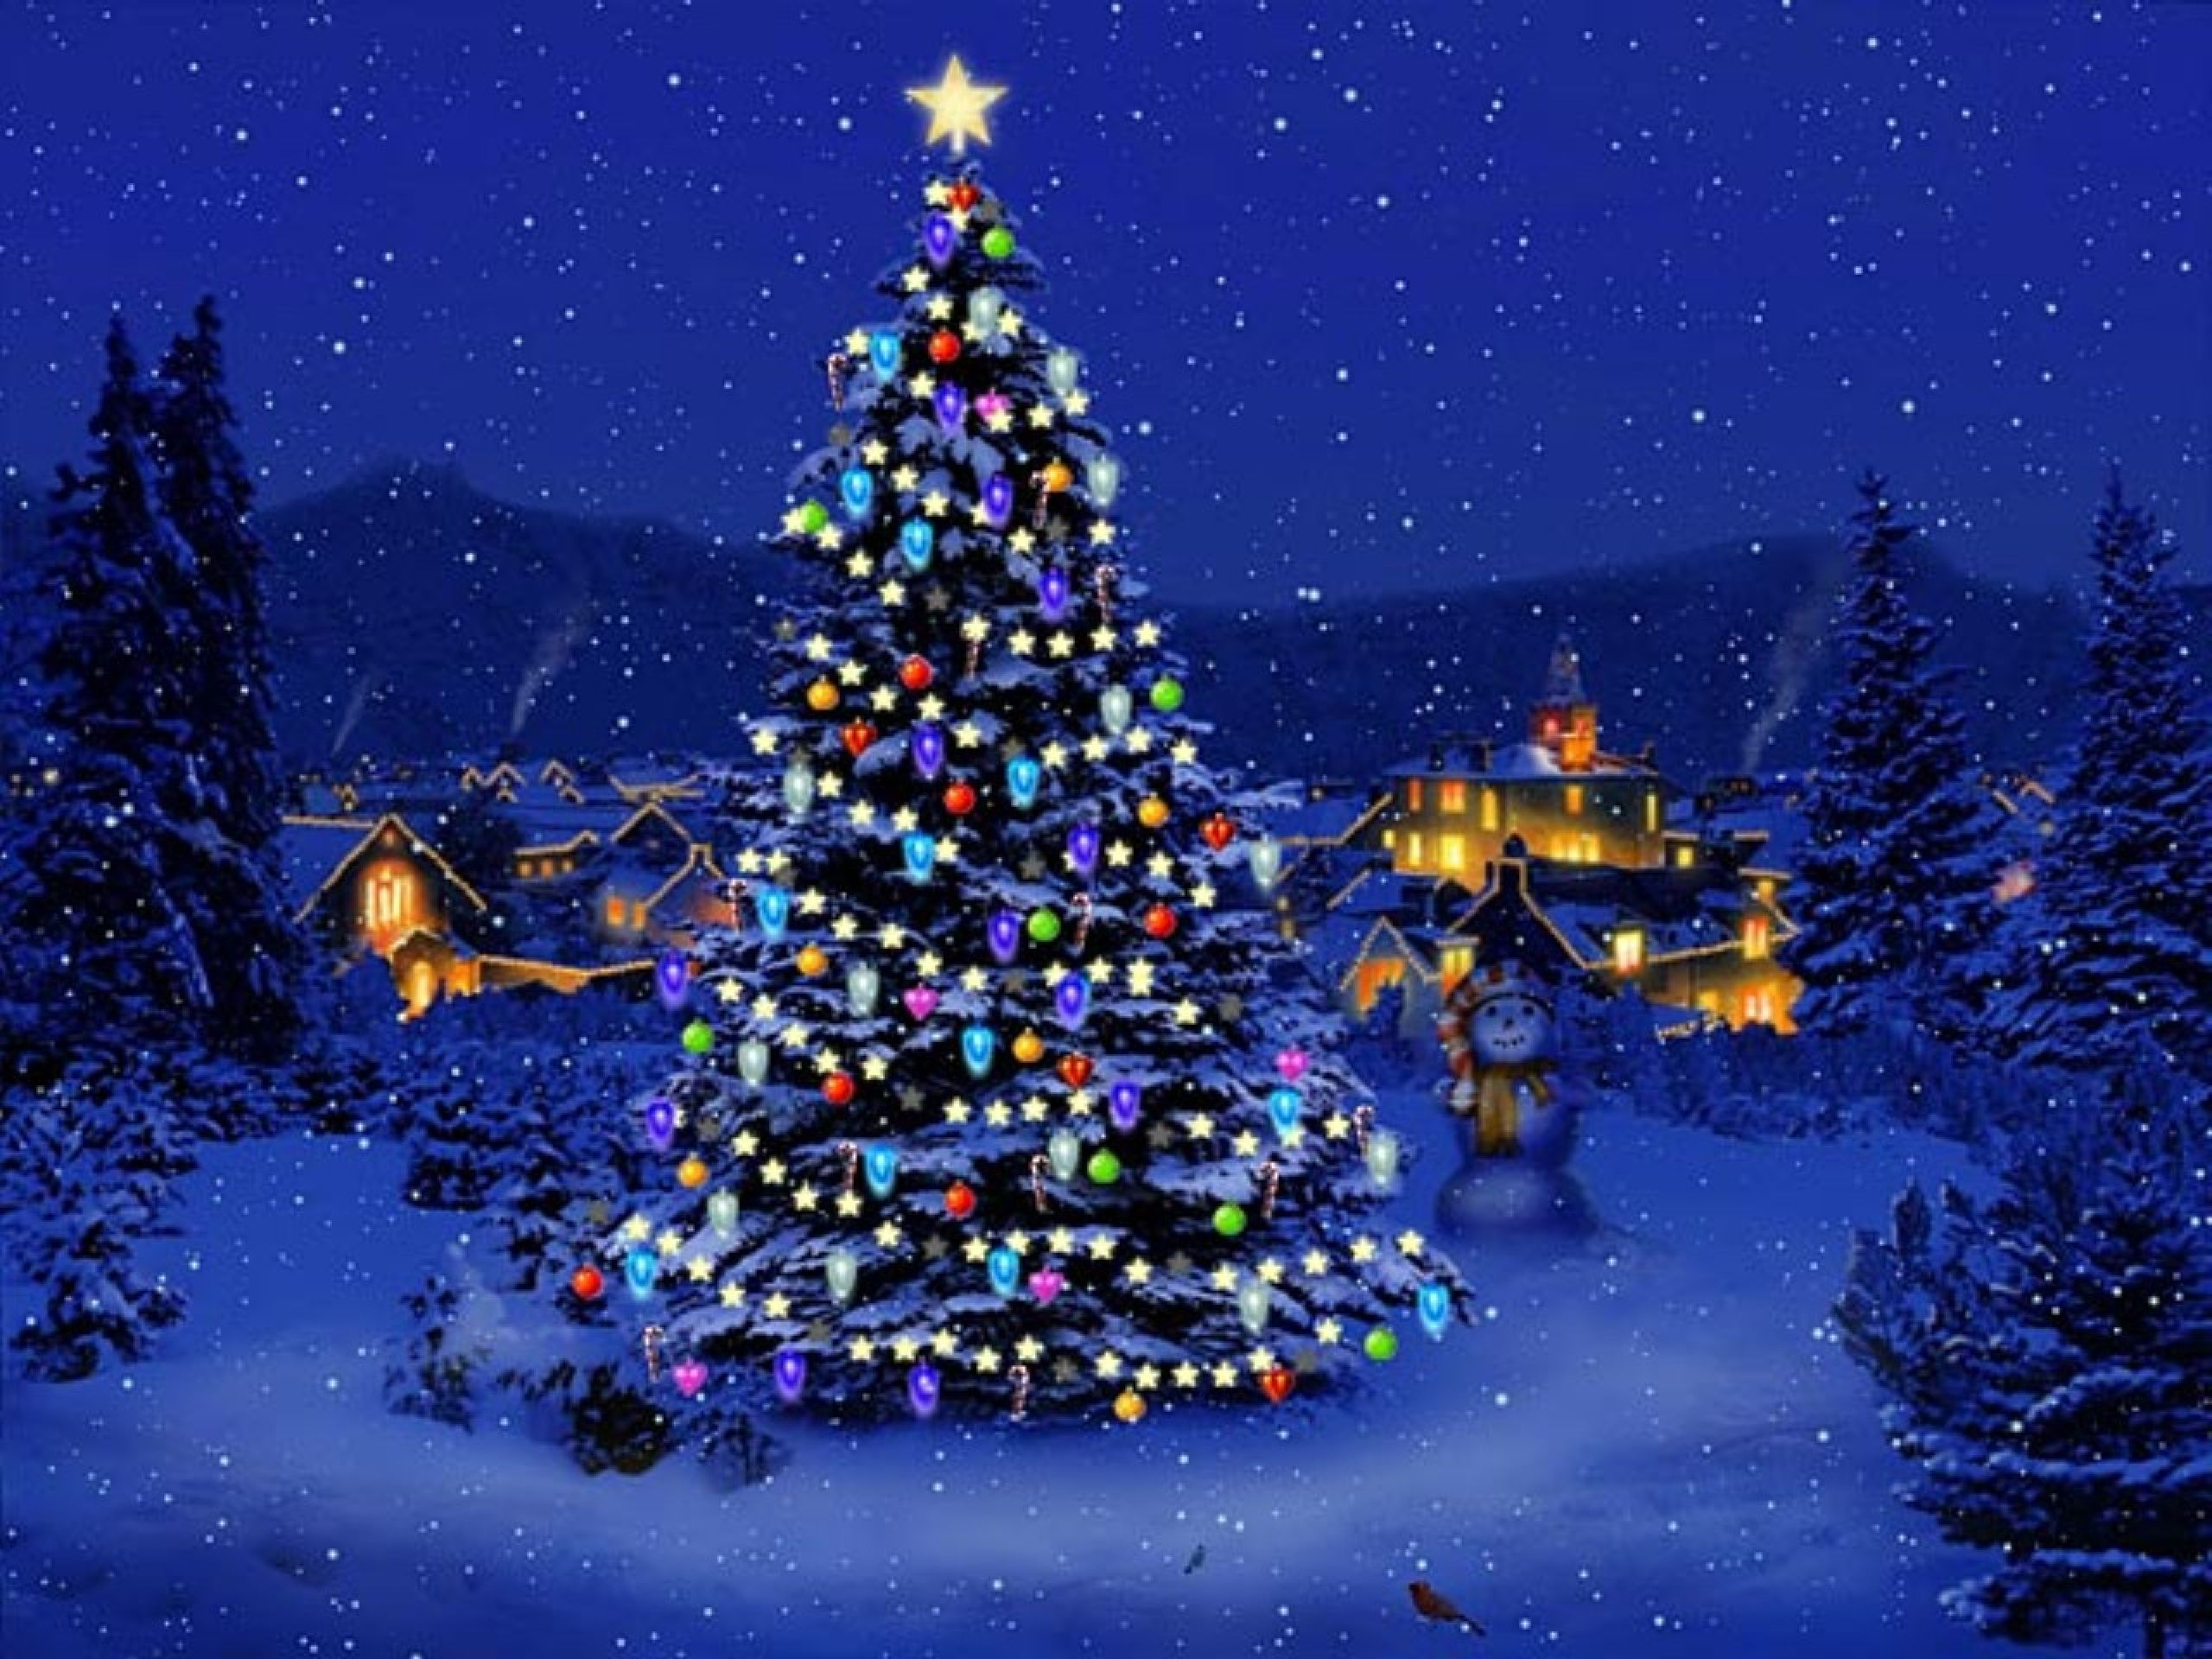 Free Christmas Themes For Windows 7 Download Wallpapers Download 2560x1920 Christmas Lights Christmas Tree Images Christmas Tree Wallpaper 3d Christmas Tree